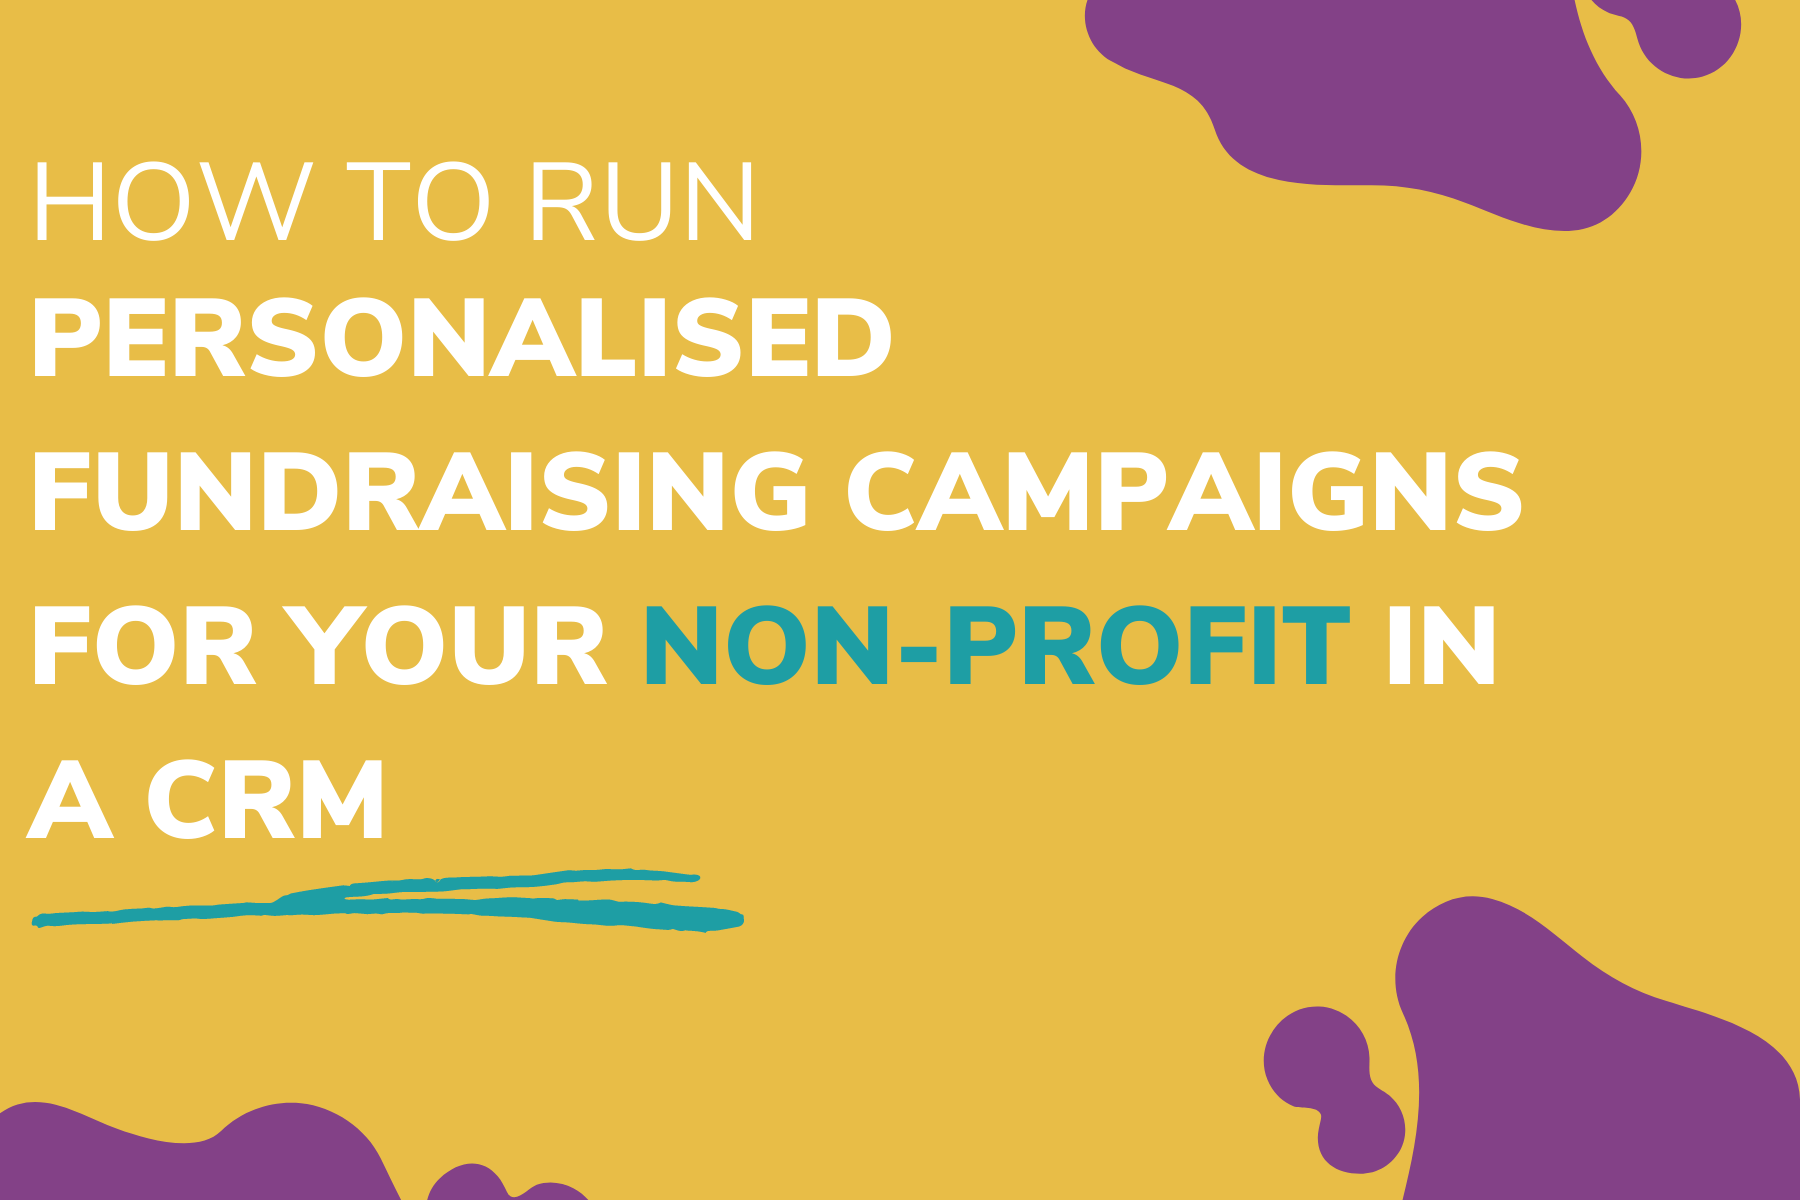 How to run personalised fundraising campaigns for your non-profit in a CRM